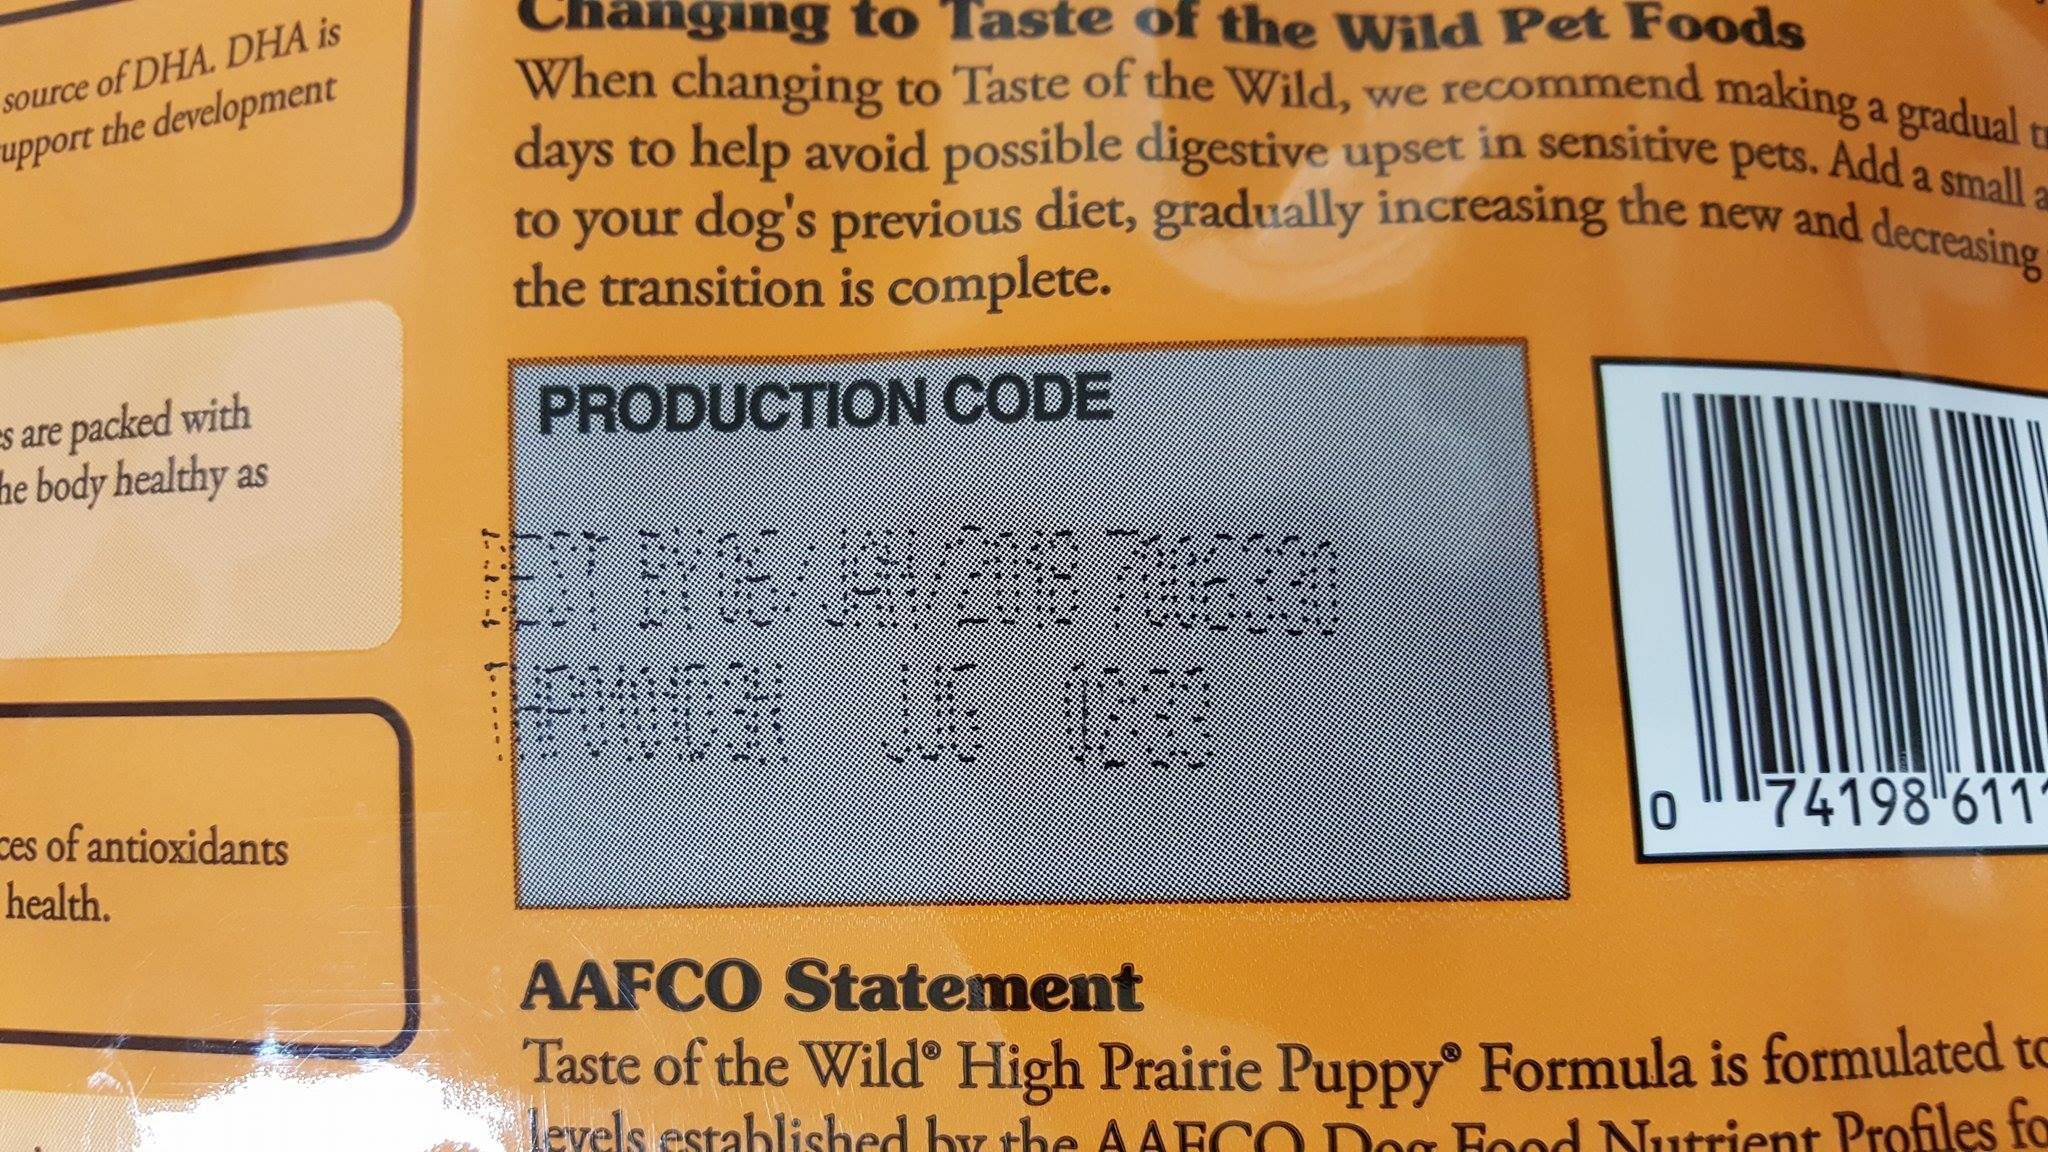 What was the Taste of the Wild cat food recall?